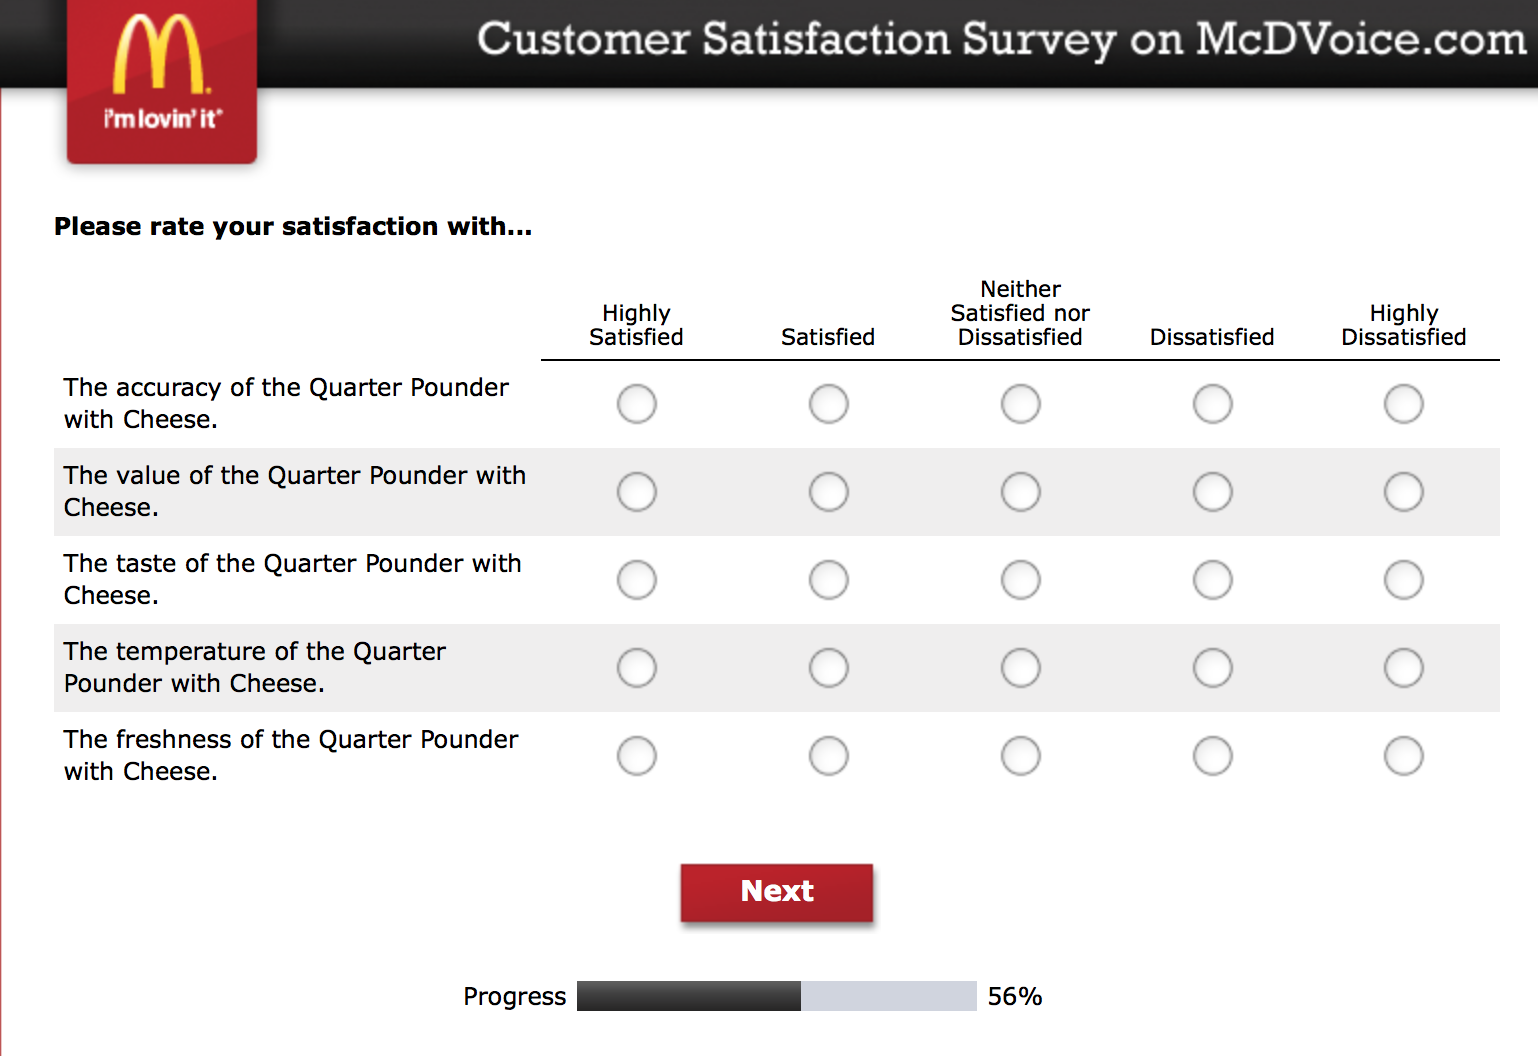 Mcdvoice.com Customer Survey 15